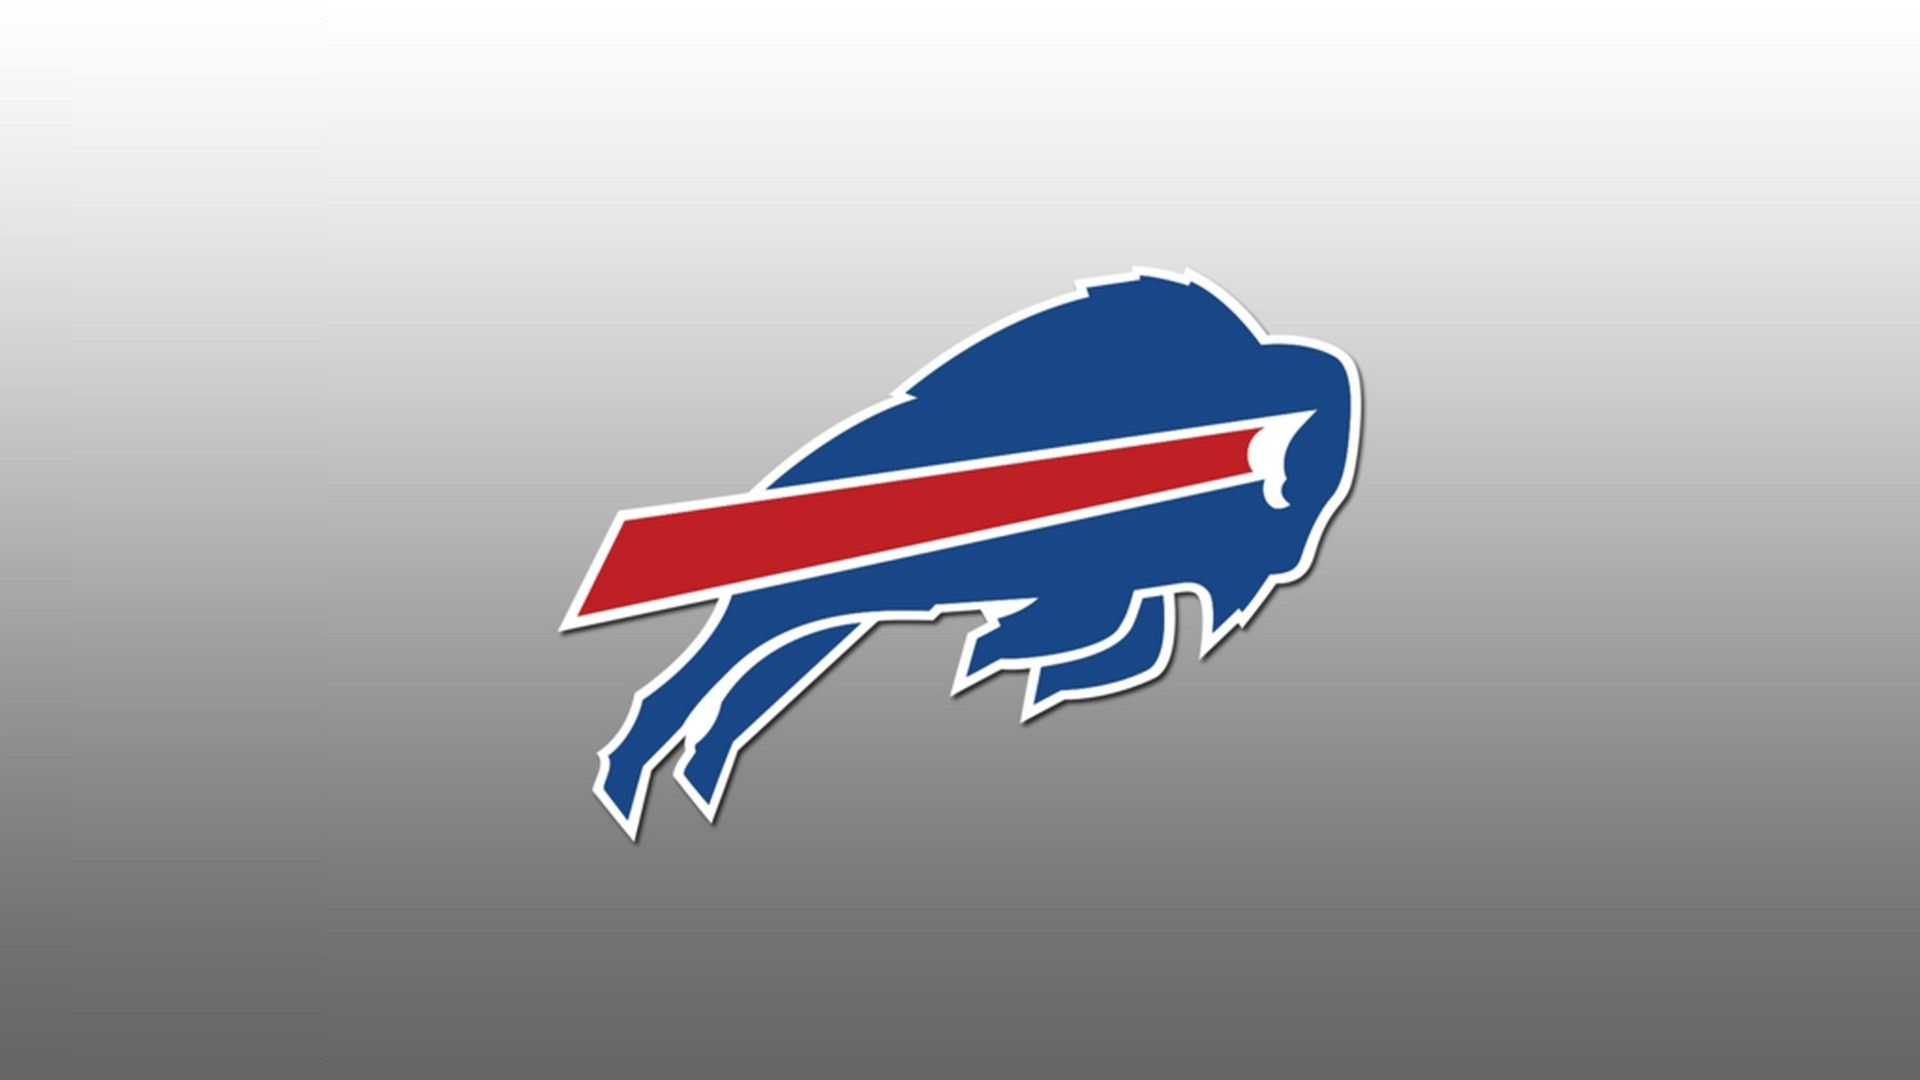 Buffalo Bills Desktop Wallpapers 2020 Nfl Football Wallpapers Nfl Football Wallpaper Football Wallpaper Buffalo Bills